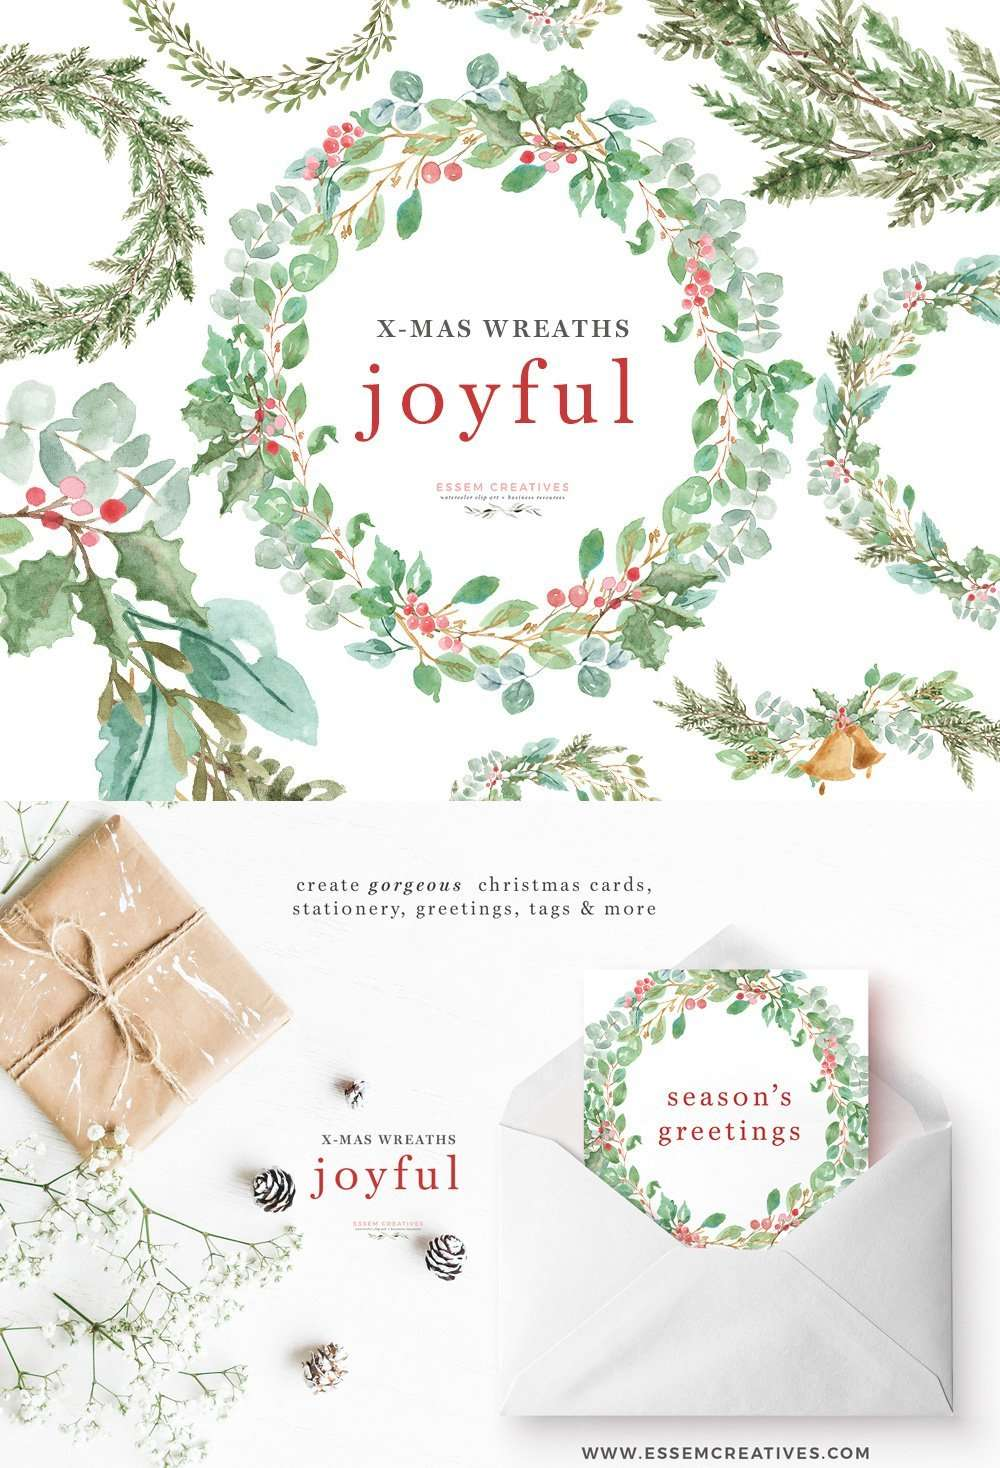 Watercolor Christmas Wreath Clipart for Holiday Cards | Essem Creatives